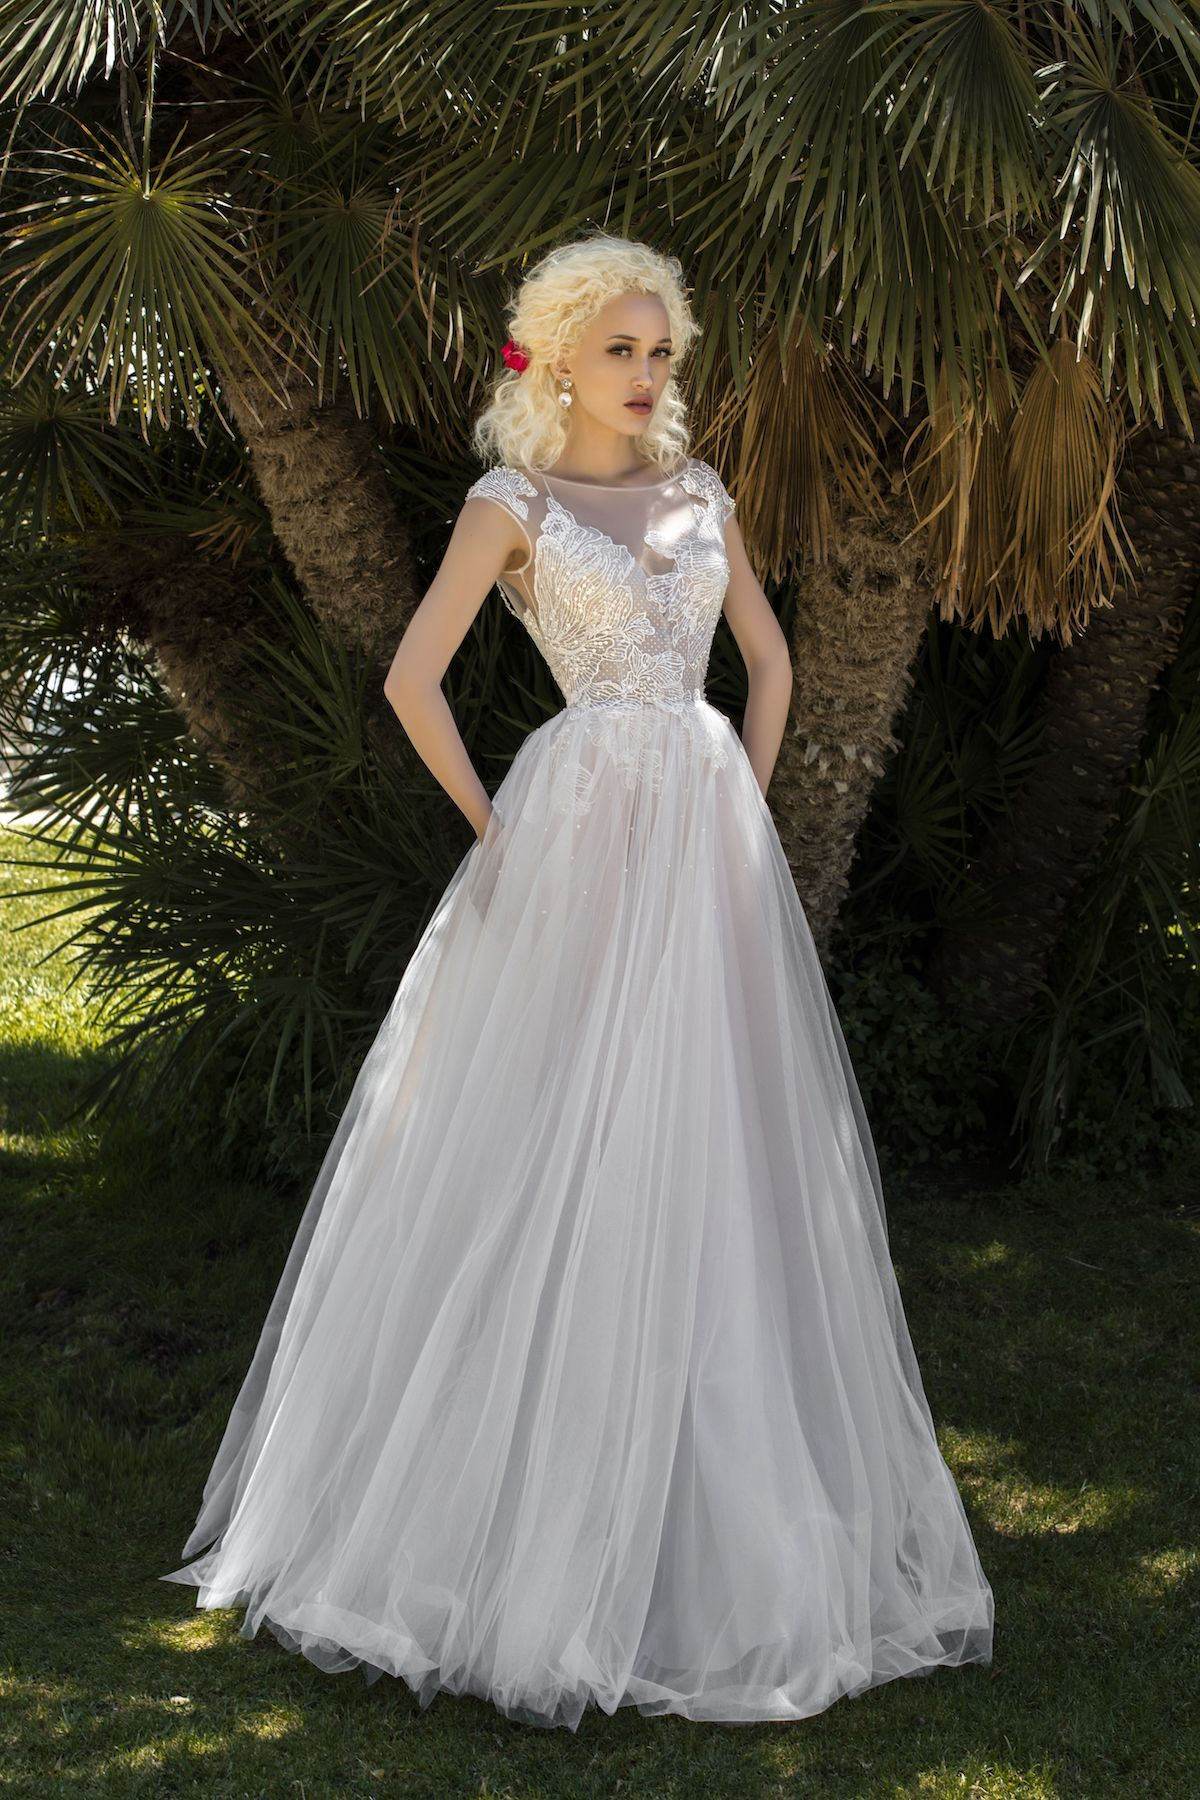 Beautiful ALine wedding dress from Jacqueline's Bridal in